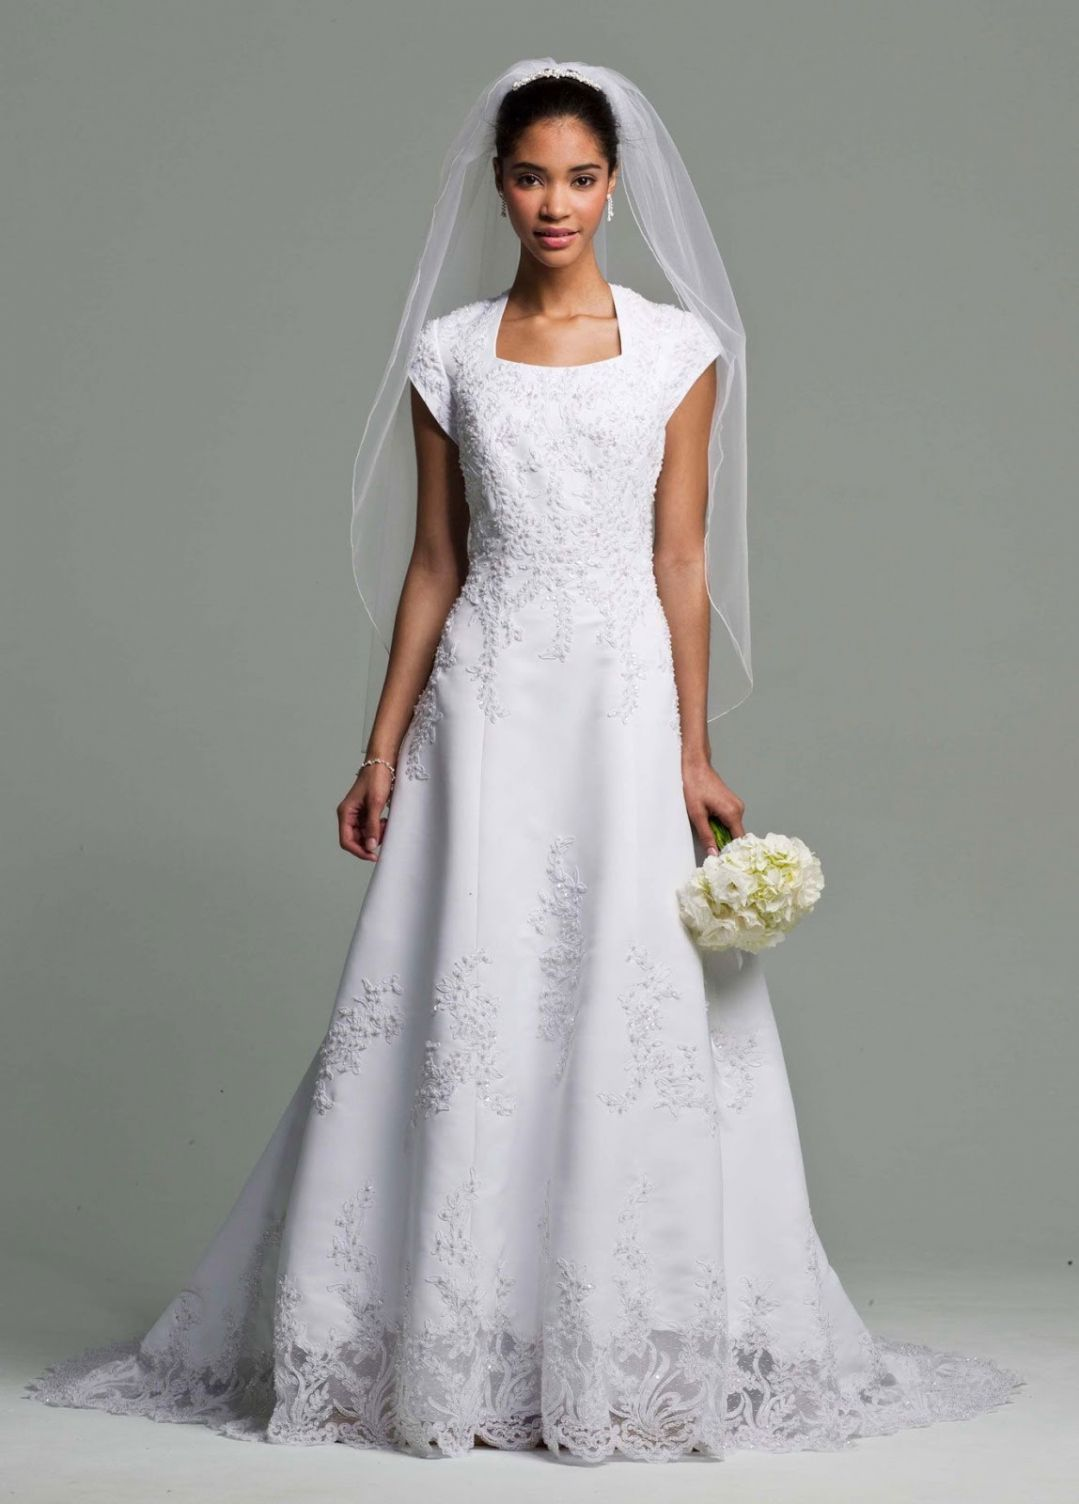 Fresh Affordable Wedding Dresses Nyc Check More At Http://svesty.com/